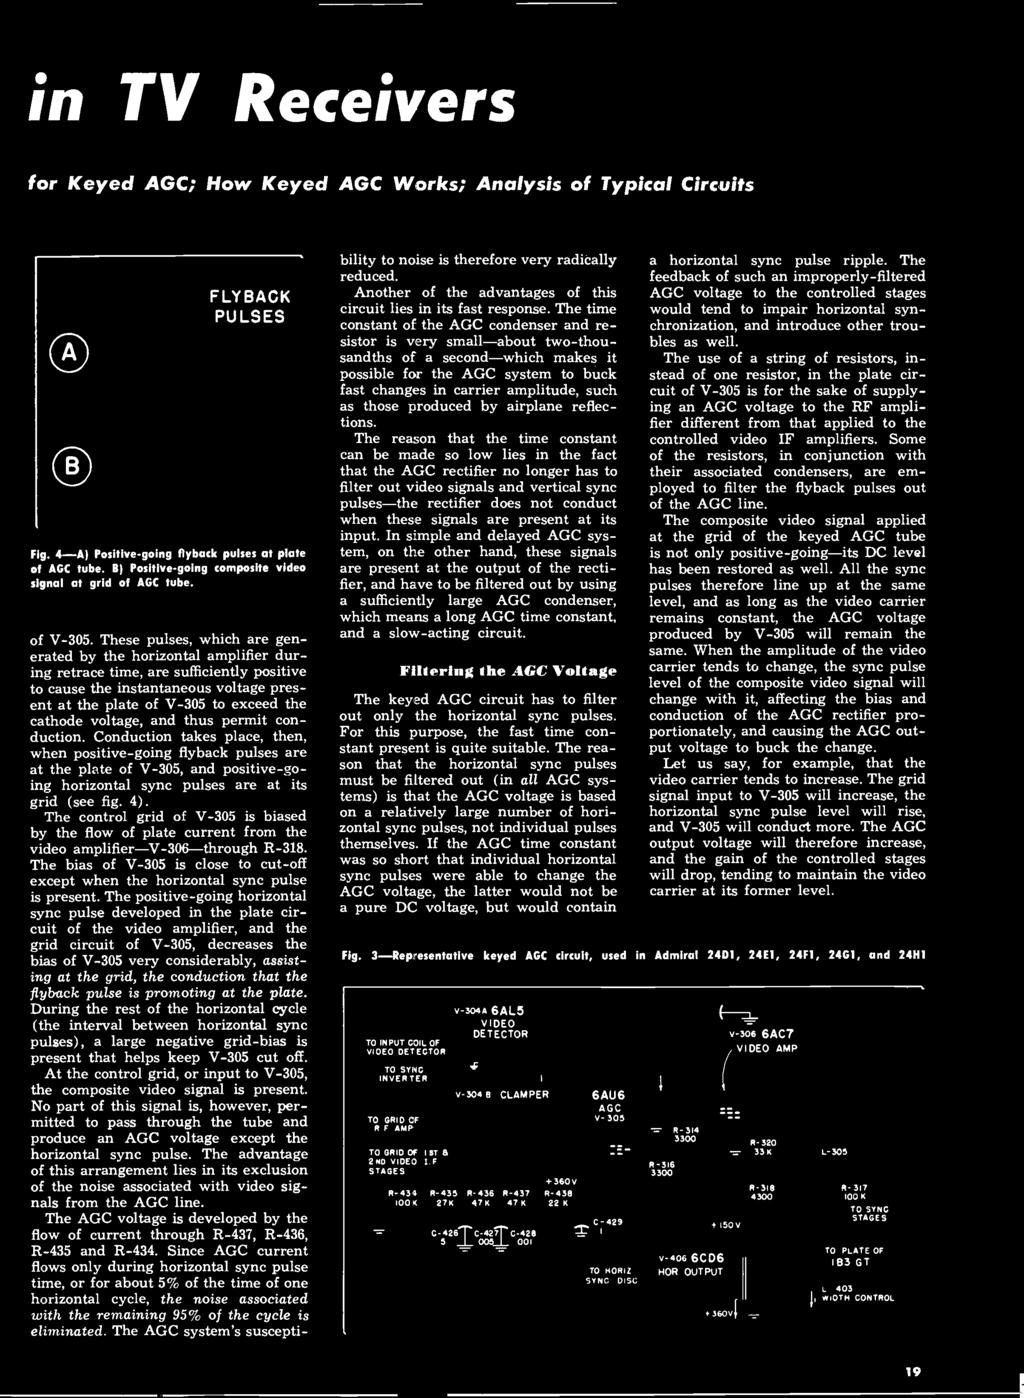 Radio Television Data Pdf Has Pulse Delay Suck Close Relay Circuit Controlcircuit In Tv Receivers For Keyed Agc How Works Analysis Of Typical Circuits